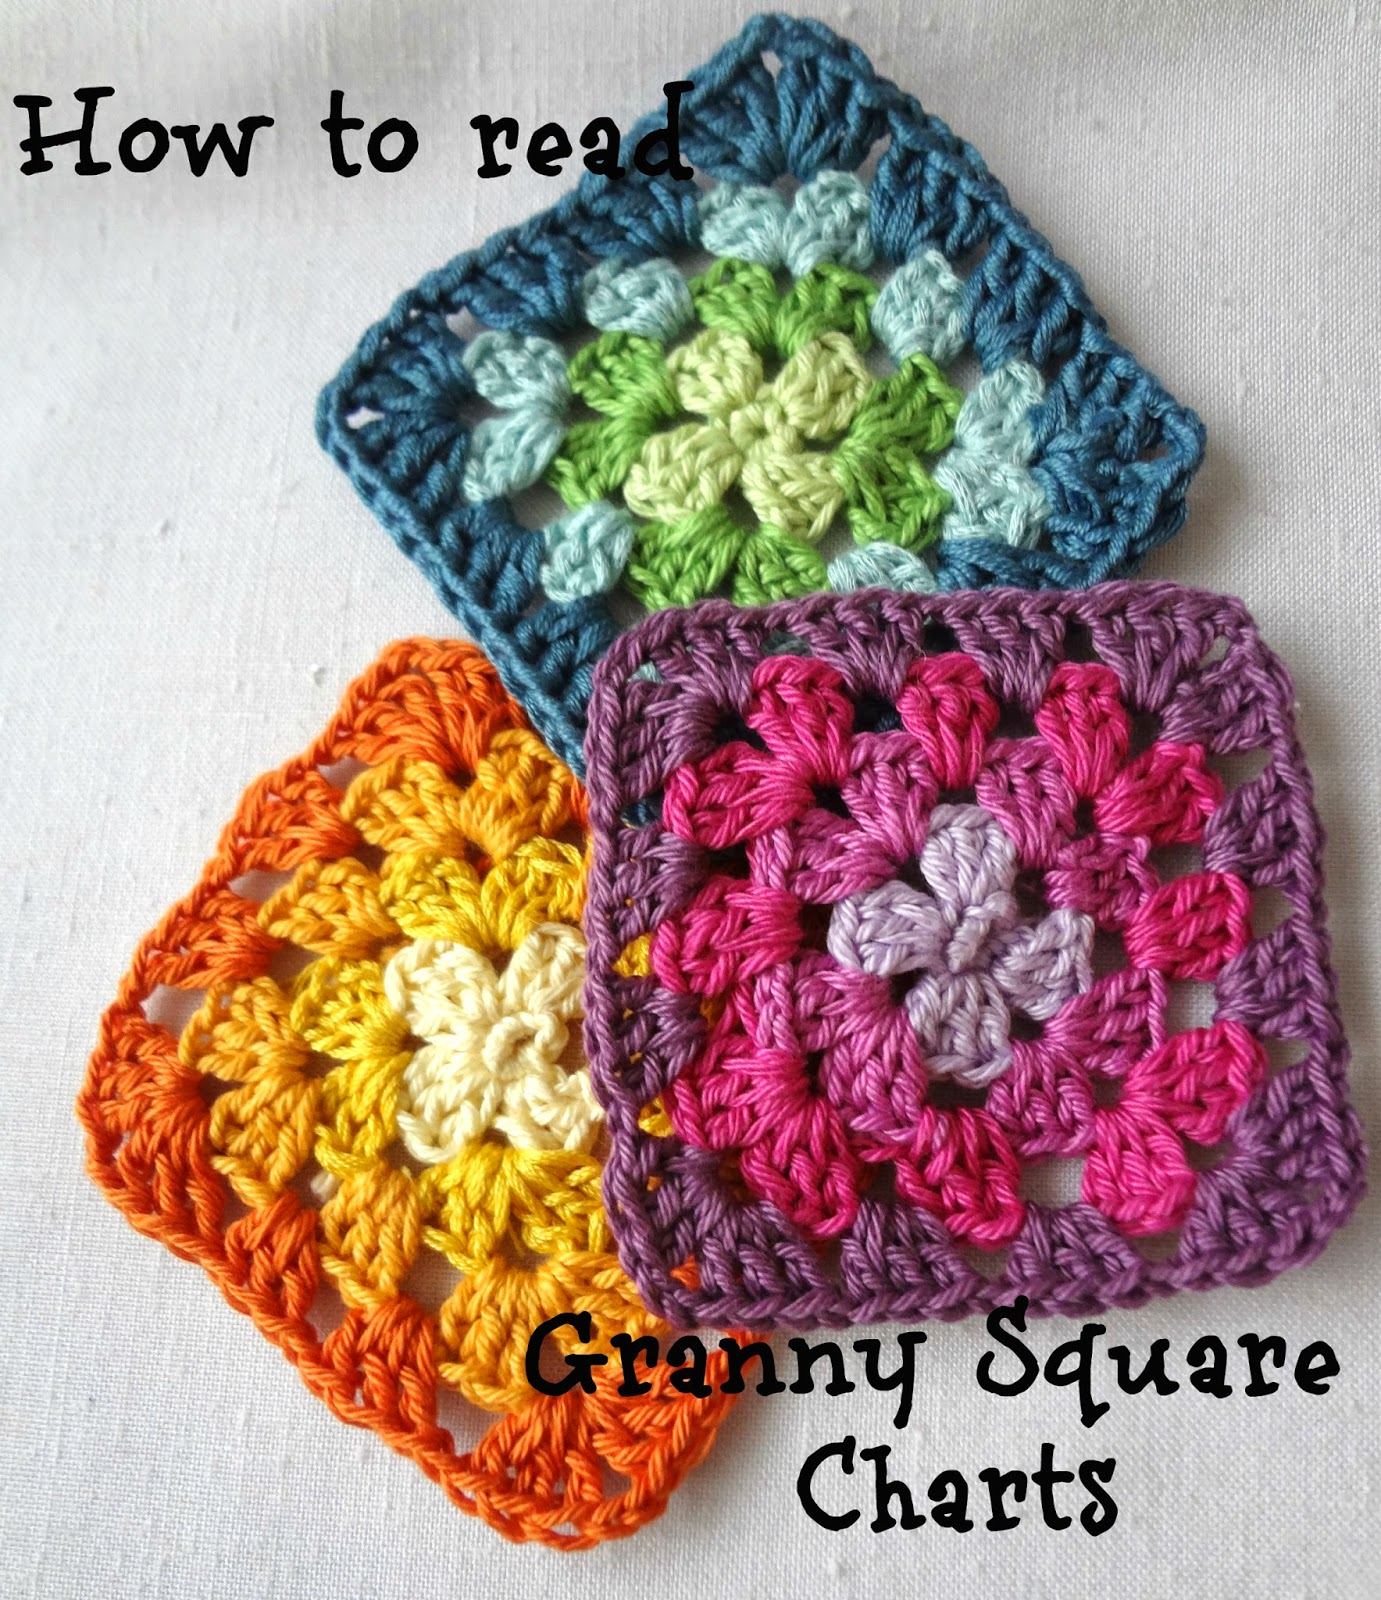 Little treasures how to read granny square charts heres the second part of how to read crochet charts and for this time i chose a basic granny square pattern i have in my pinterest board this is it bankloansurffo Images